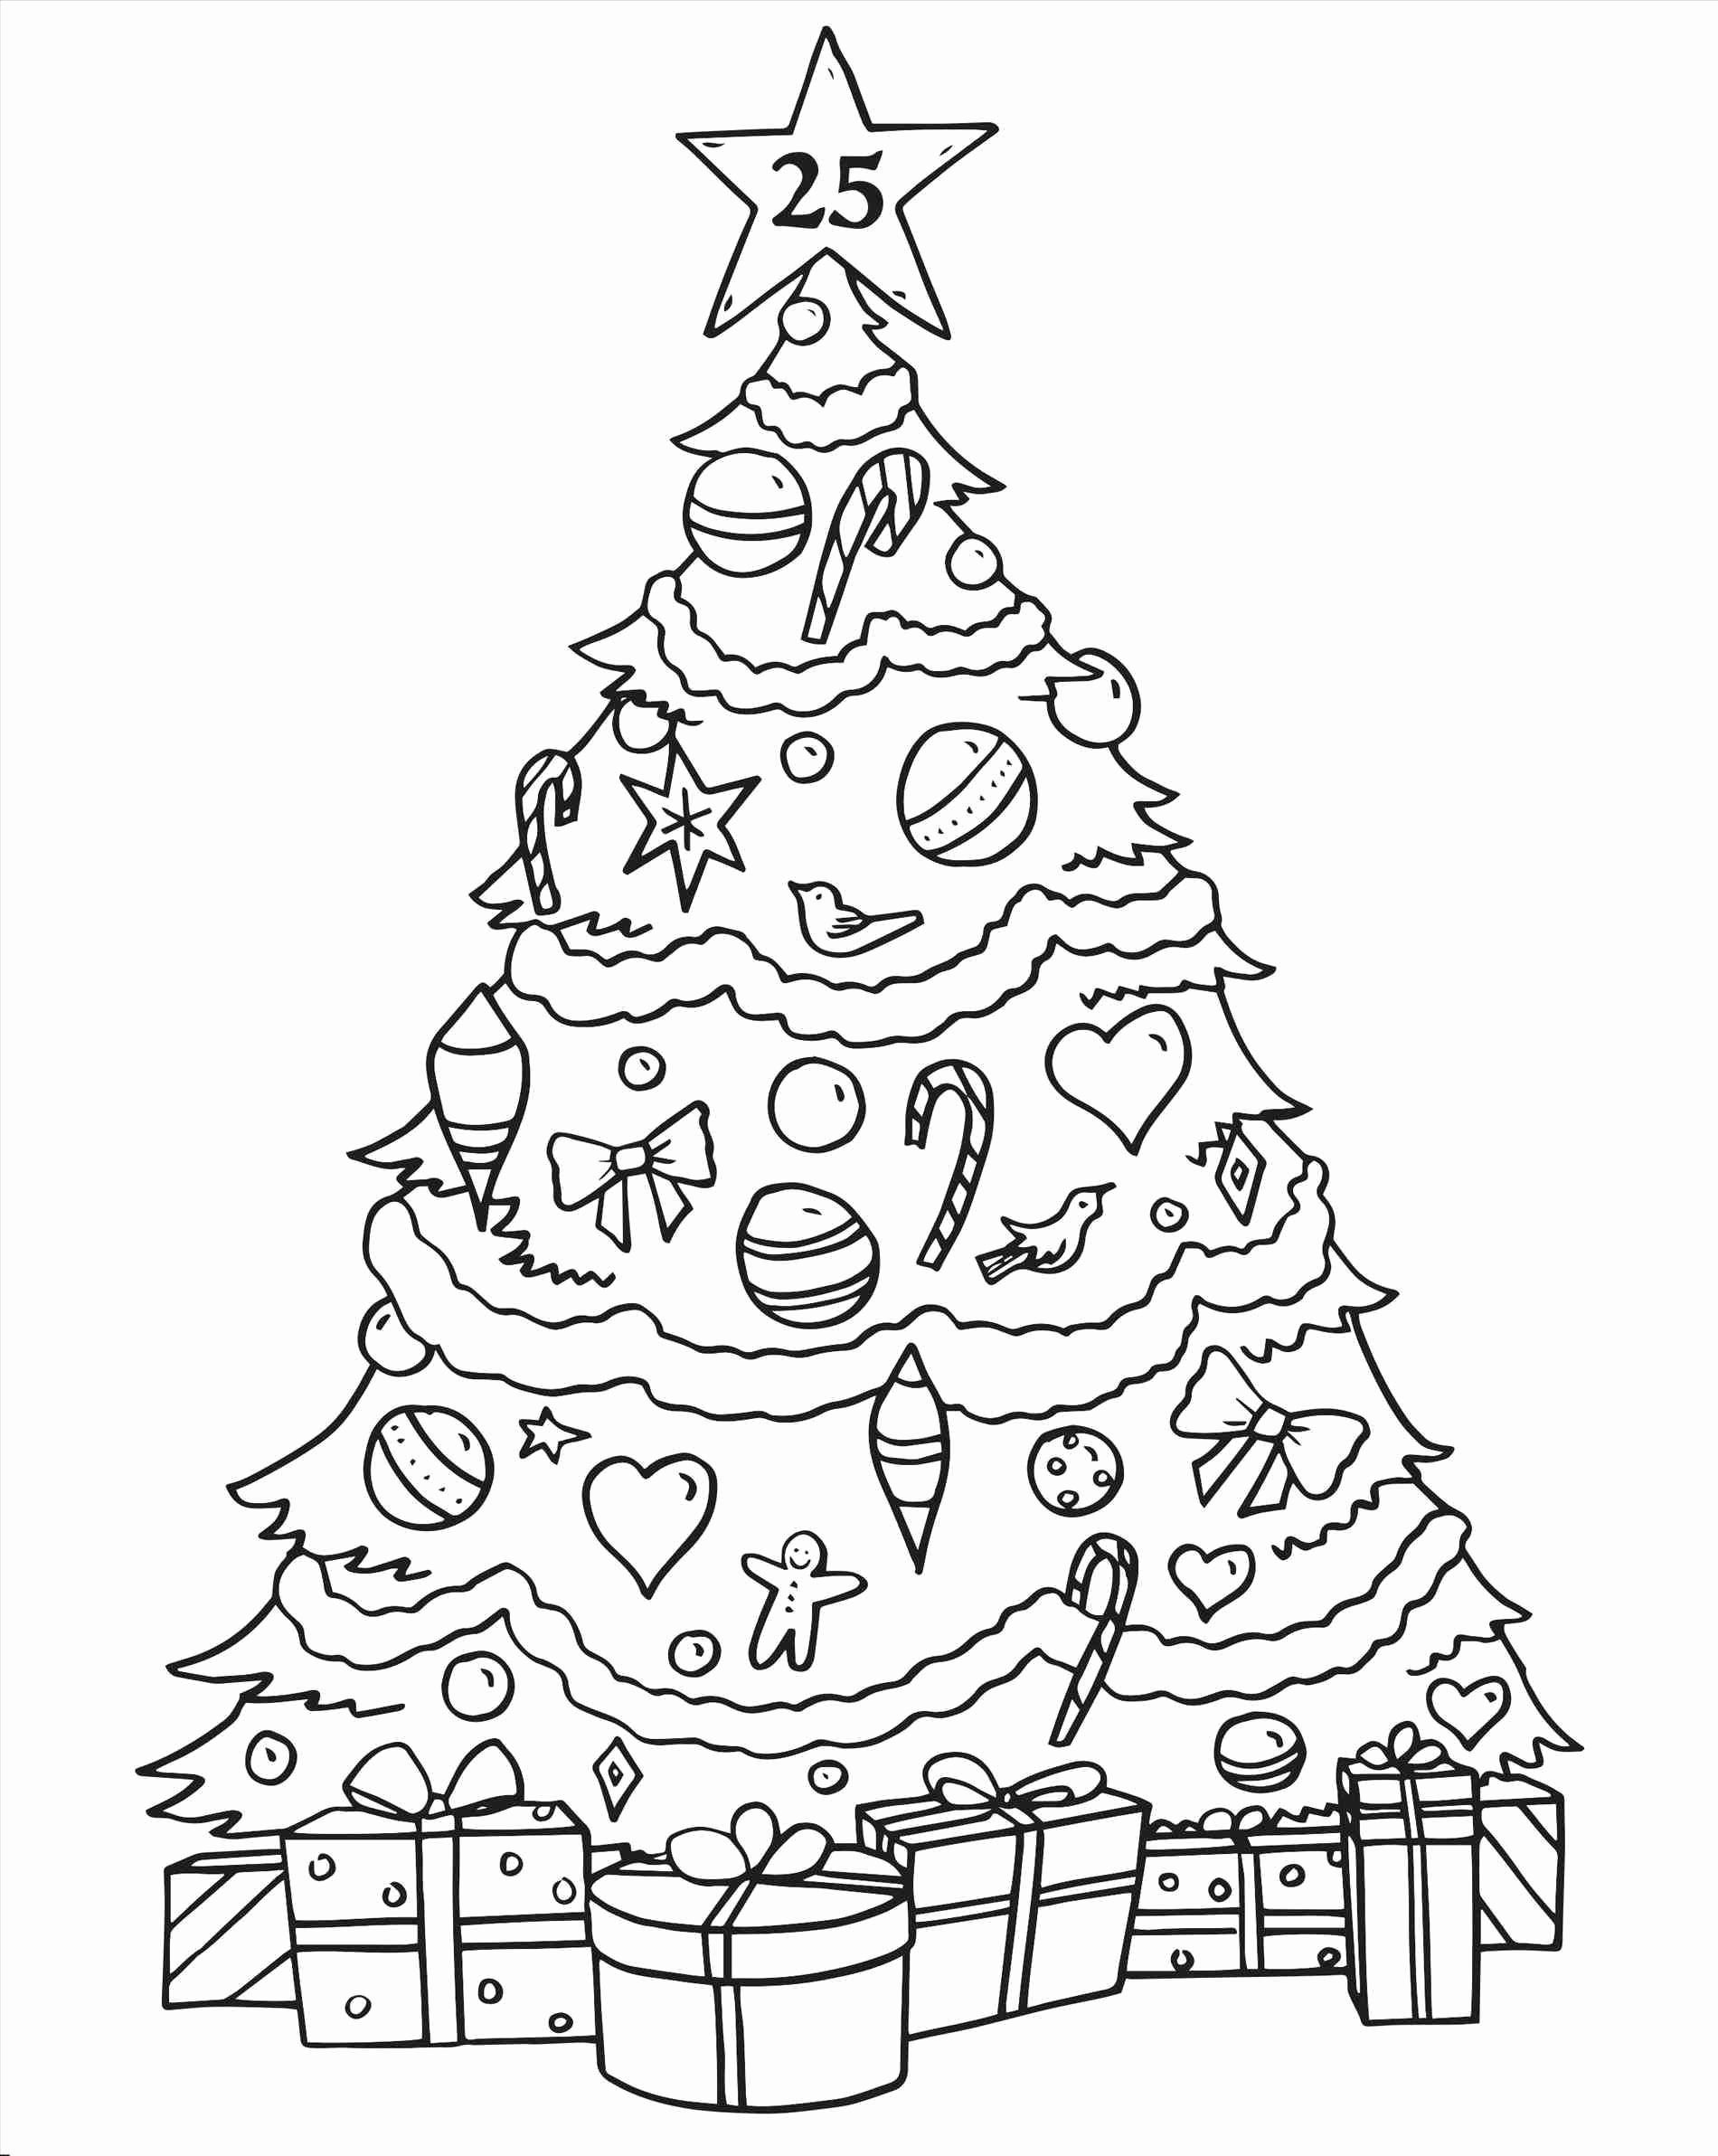 Difficult Christmas Coloring Pages Beautiful Coloring Staggering Christmas Tree Coloring Christmas Tree Coloring Page Christmas Tree Drawing Tree Coloring Page